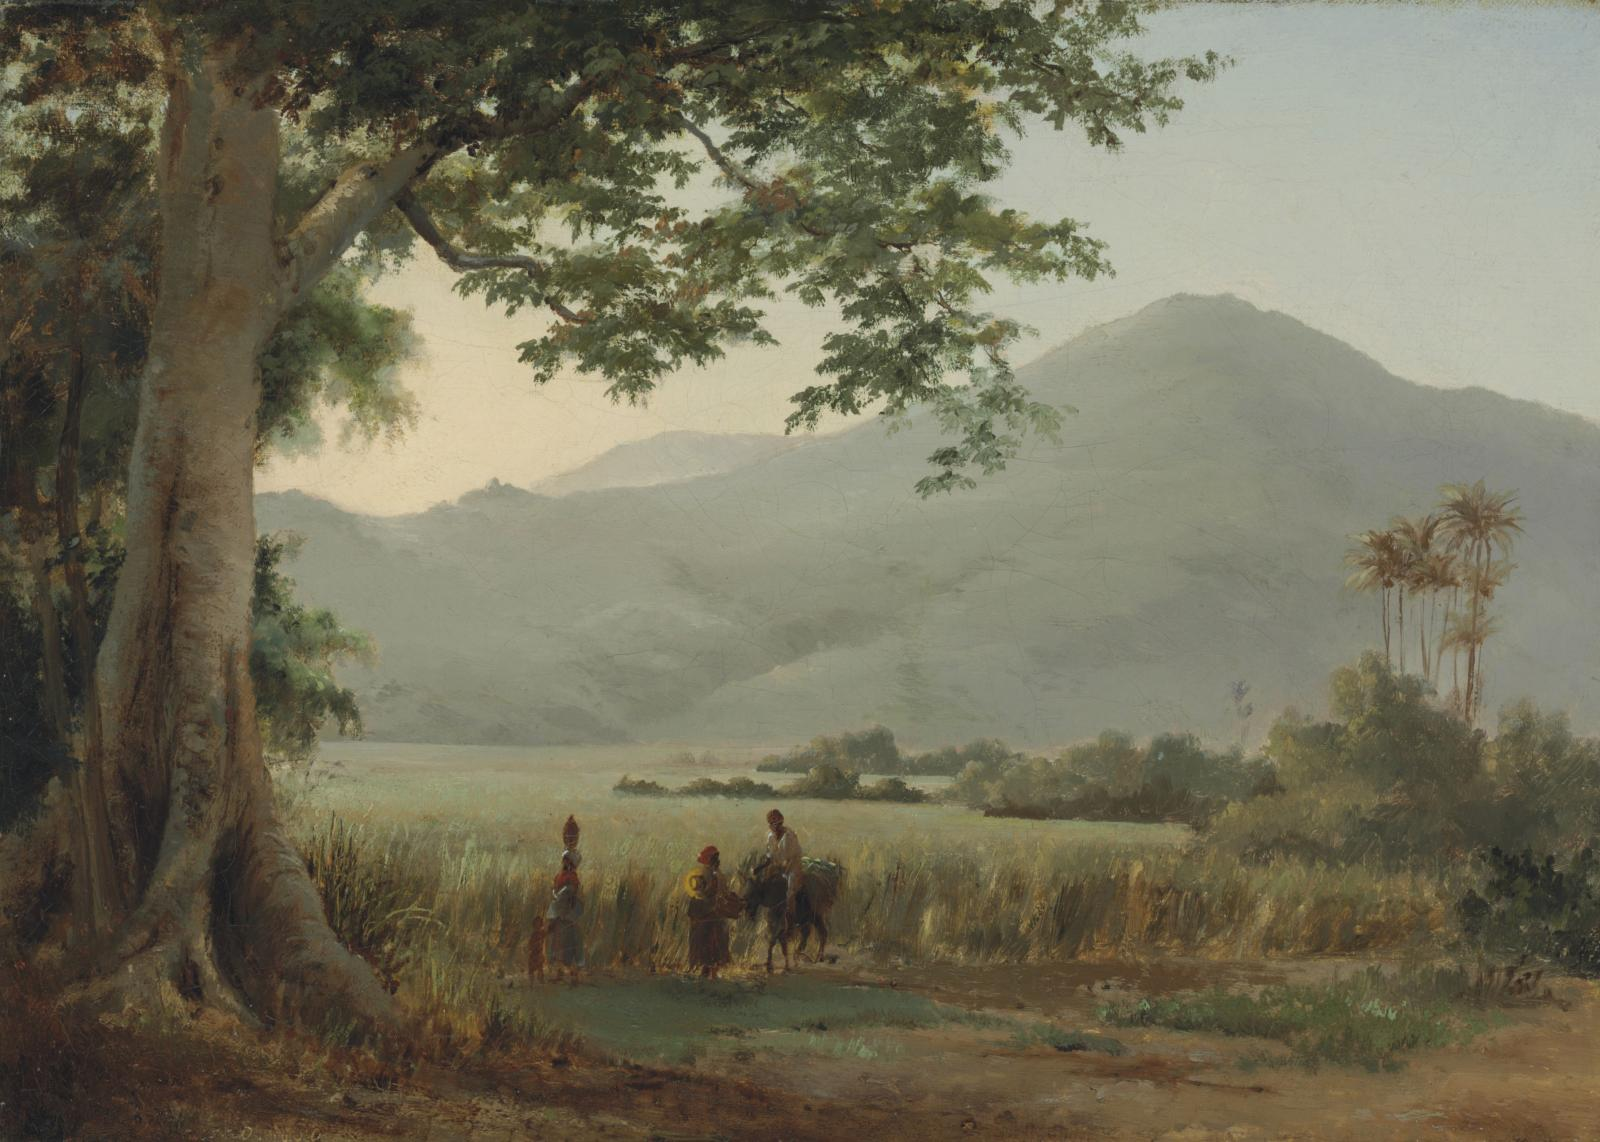 Paysage, Saint Thomas, 1856, huile sur toile, 46,3 x 38 cm. Virginia Museum of Fine Arts, Richmond. © Collection of Mr. and Mrs. Paul Mellon